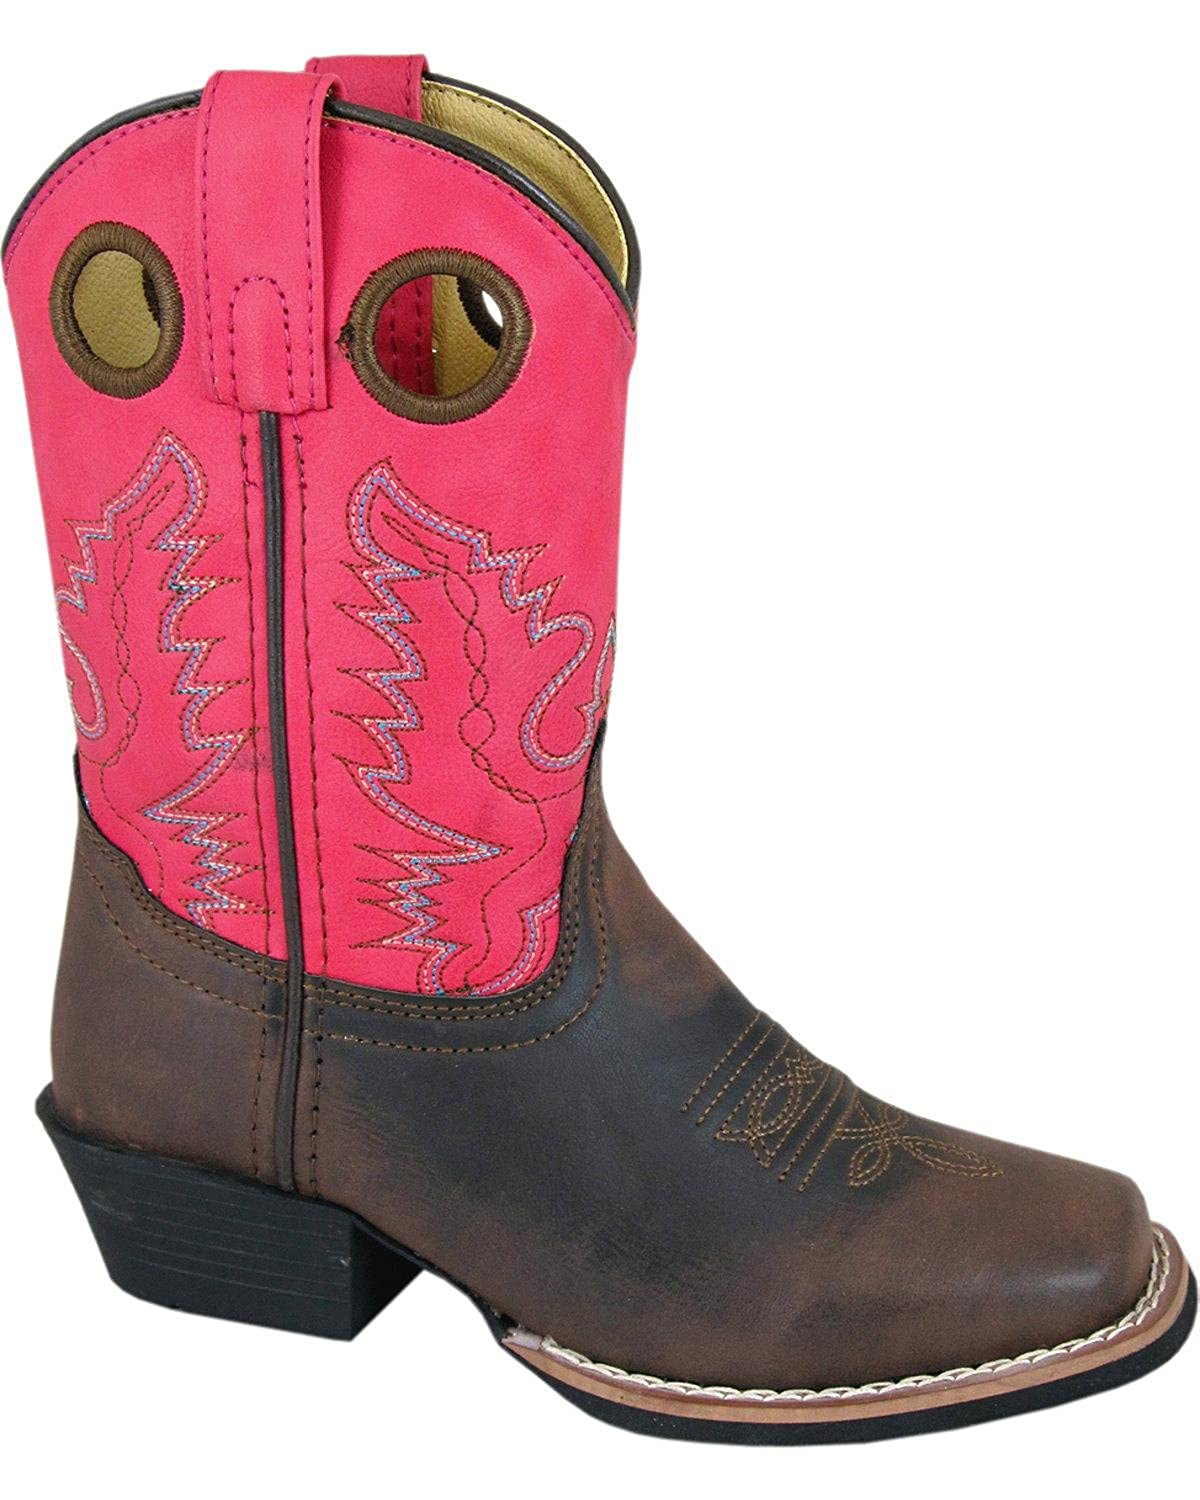 Smoky Mountain Girls Memphis Western Boot Square Toe Brown 4 D M US